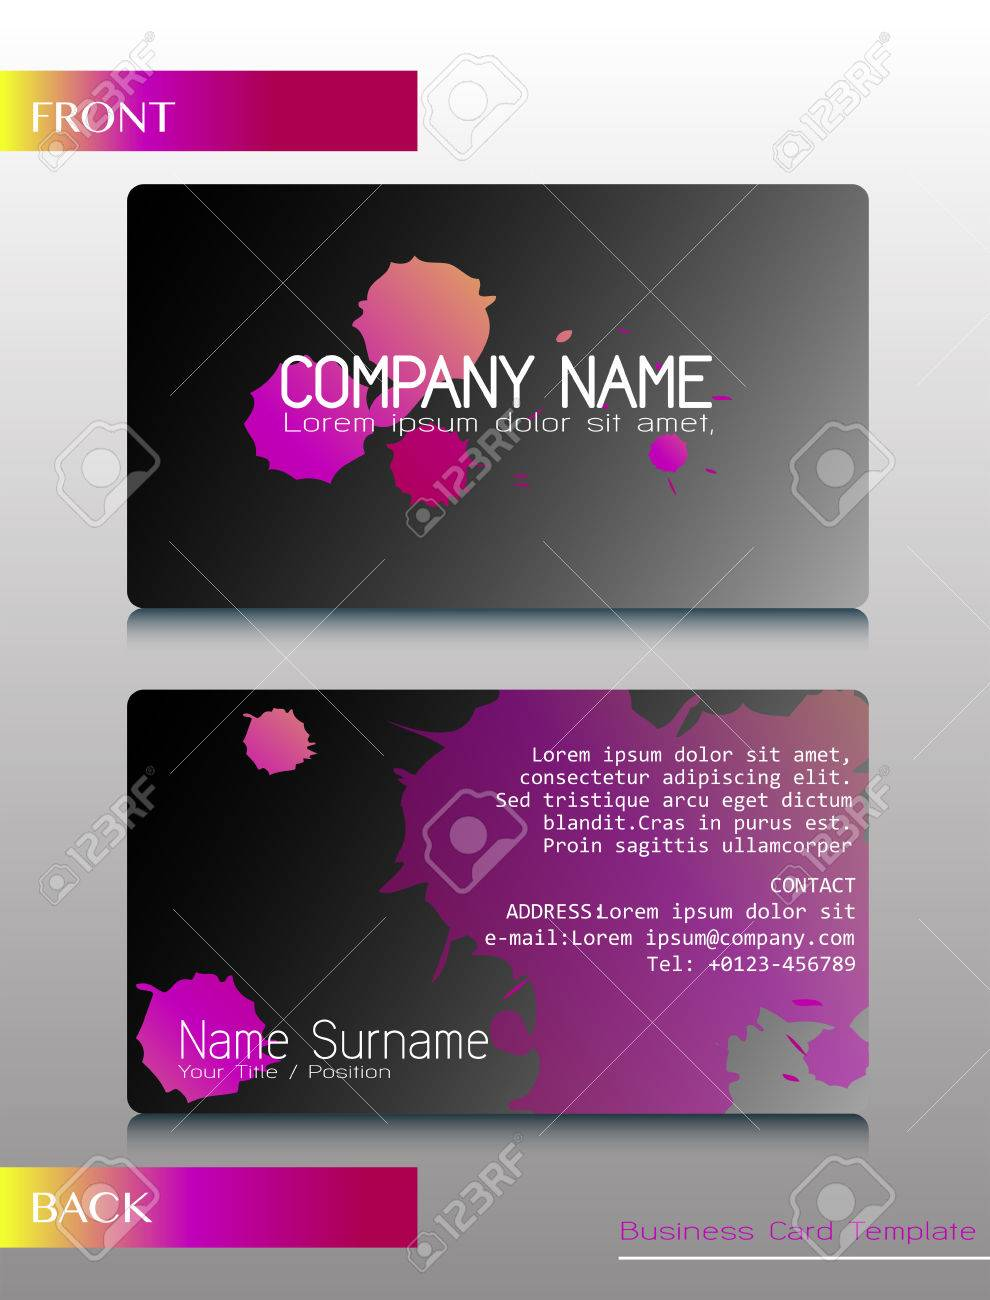 What to put on the back of a business card images free business back of a business card image collections free business cards a front and back design of magicingreecefo Image collections